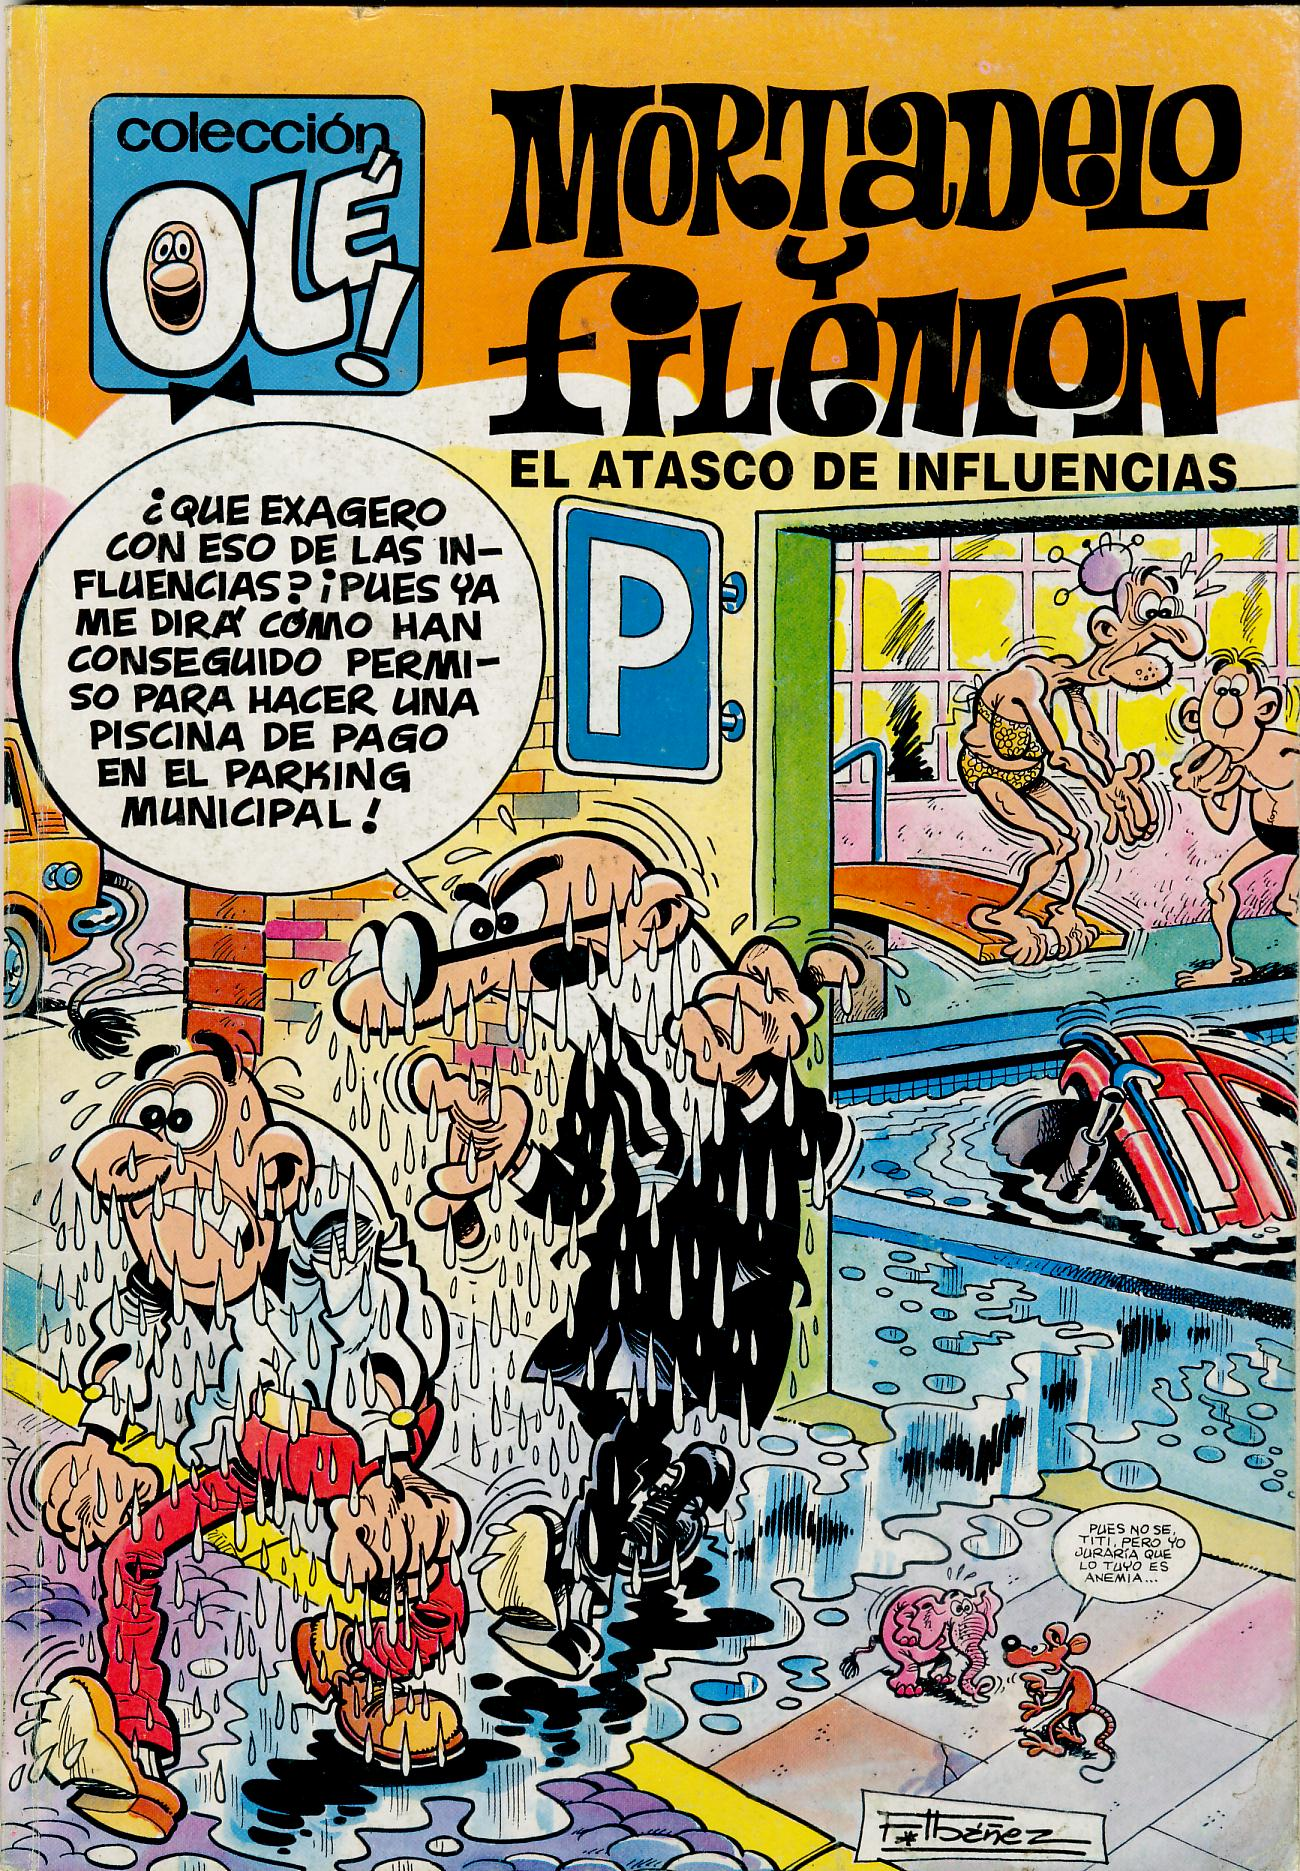 El Atasco de Influencias - Mortadelo y Filemón